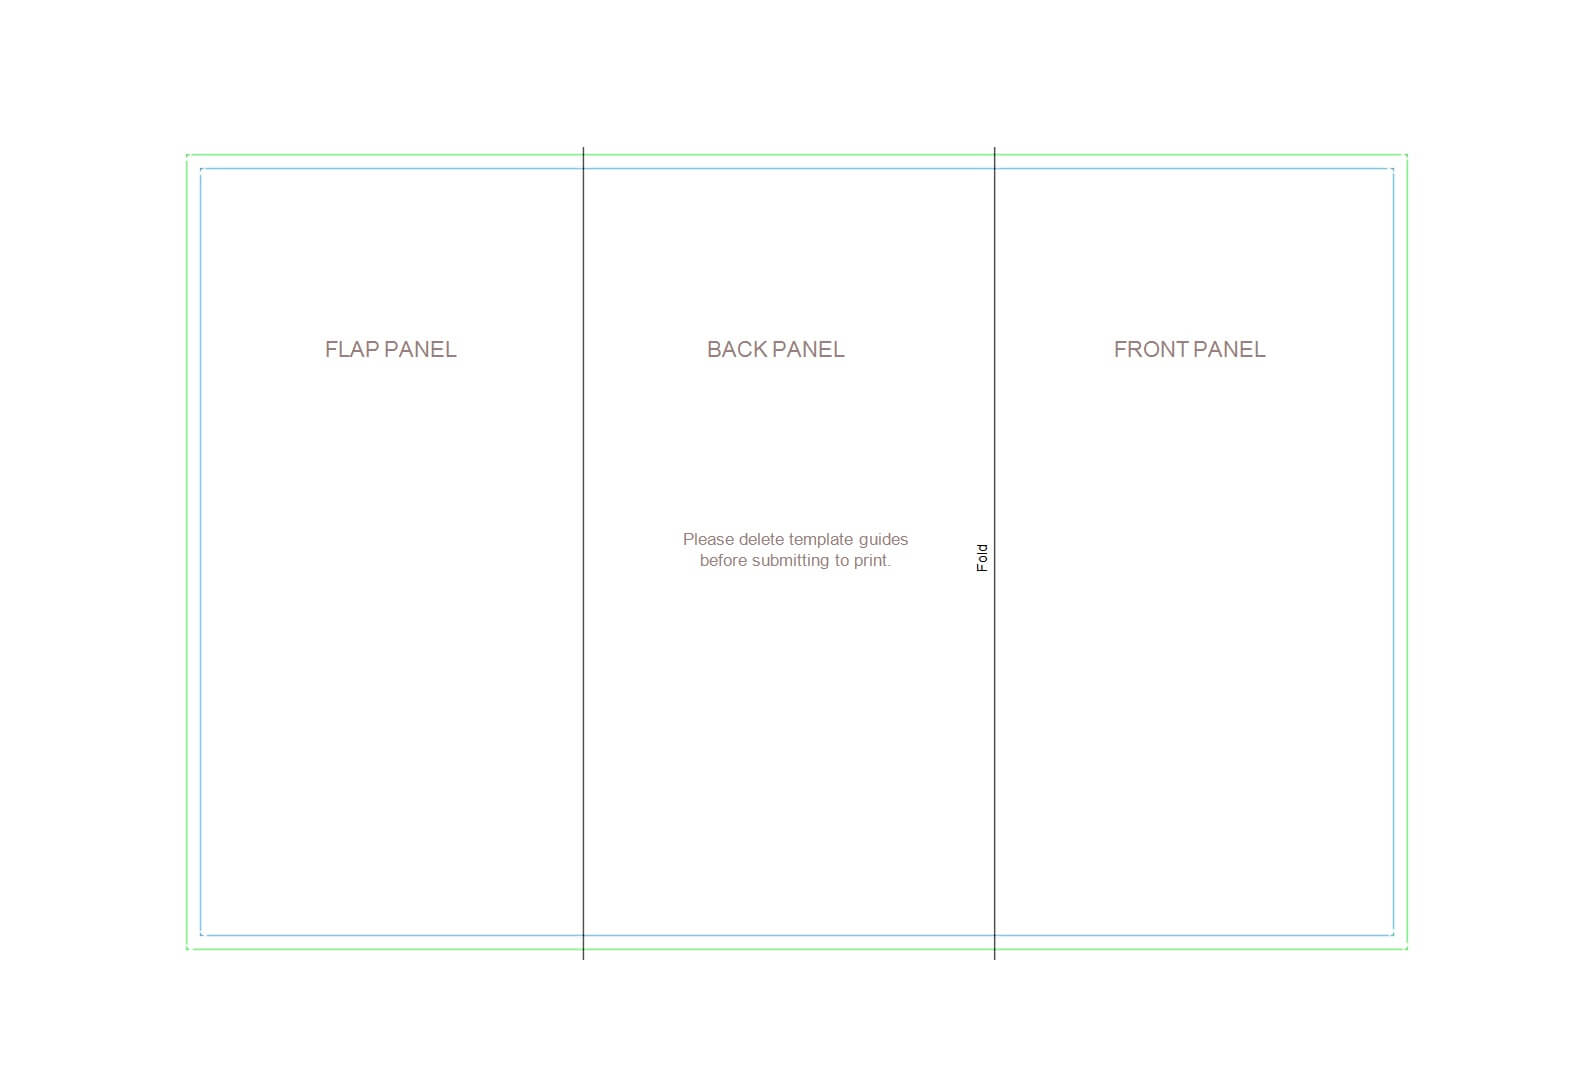 50 Free Pamphlet Templates [Word / Google Docs] ᐅ Template Lab In Brochure Template Google Drive